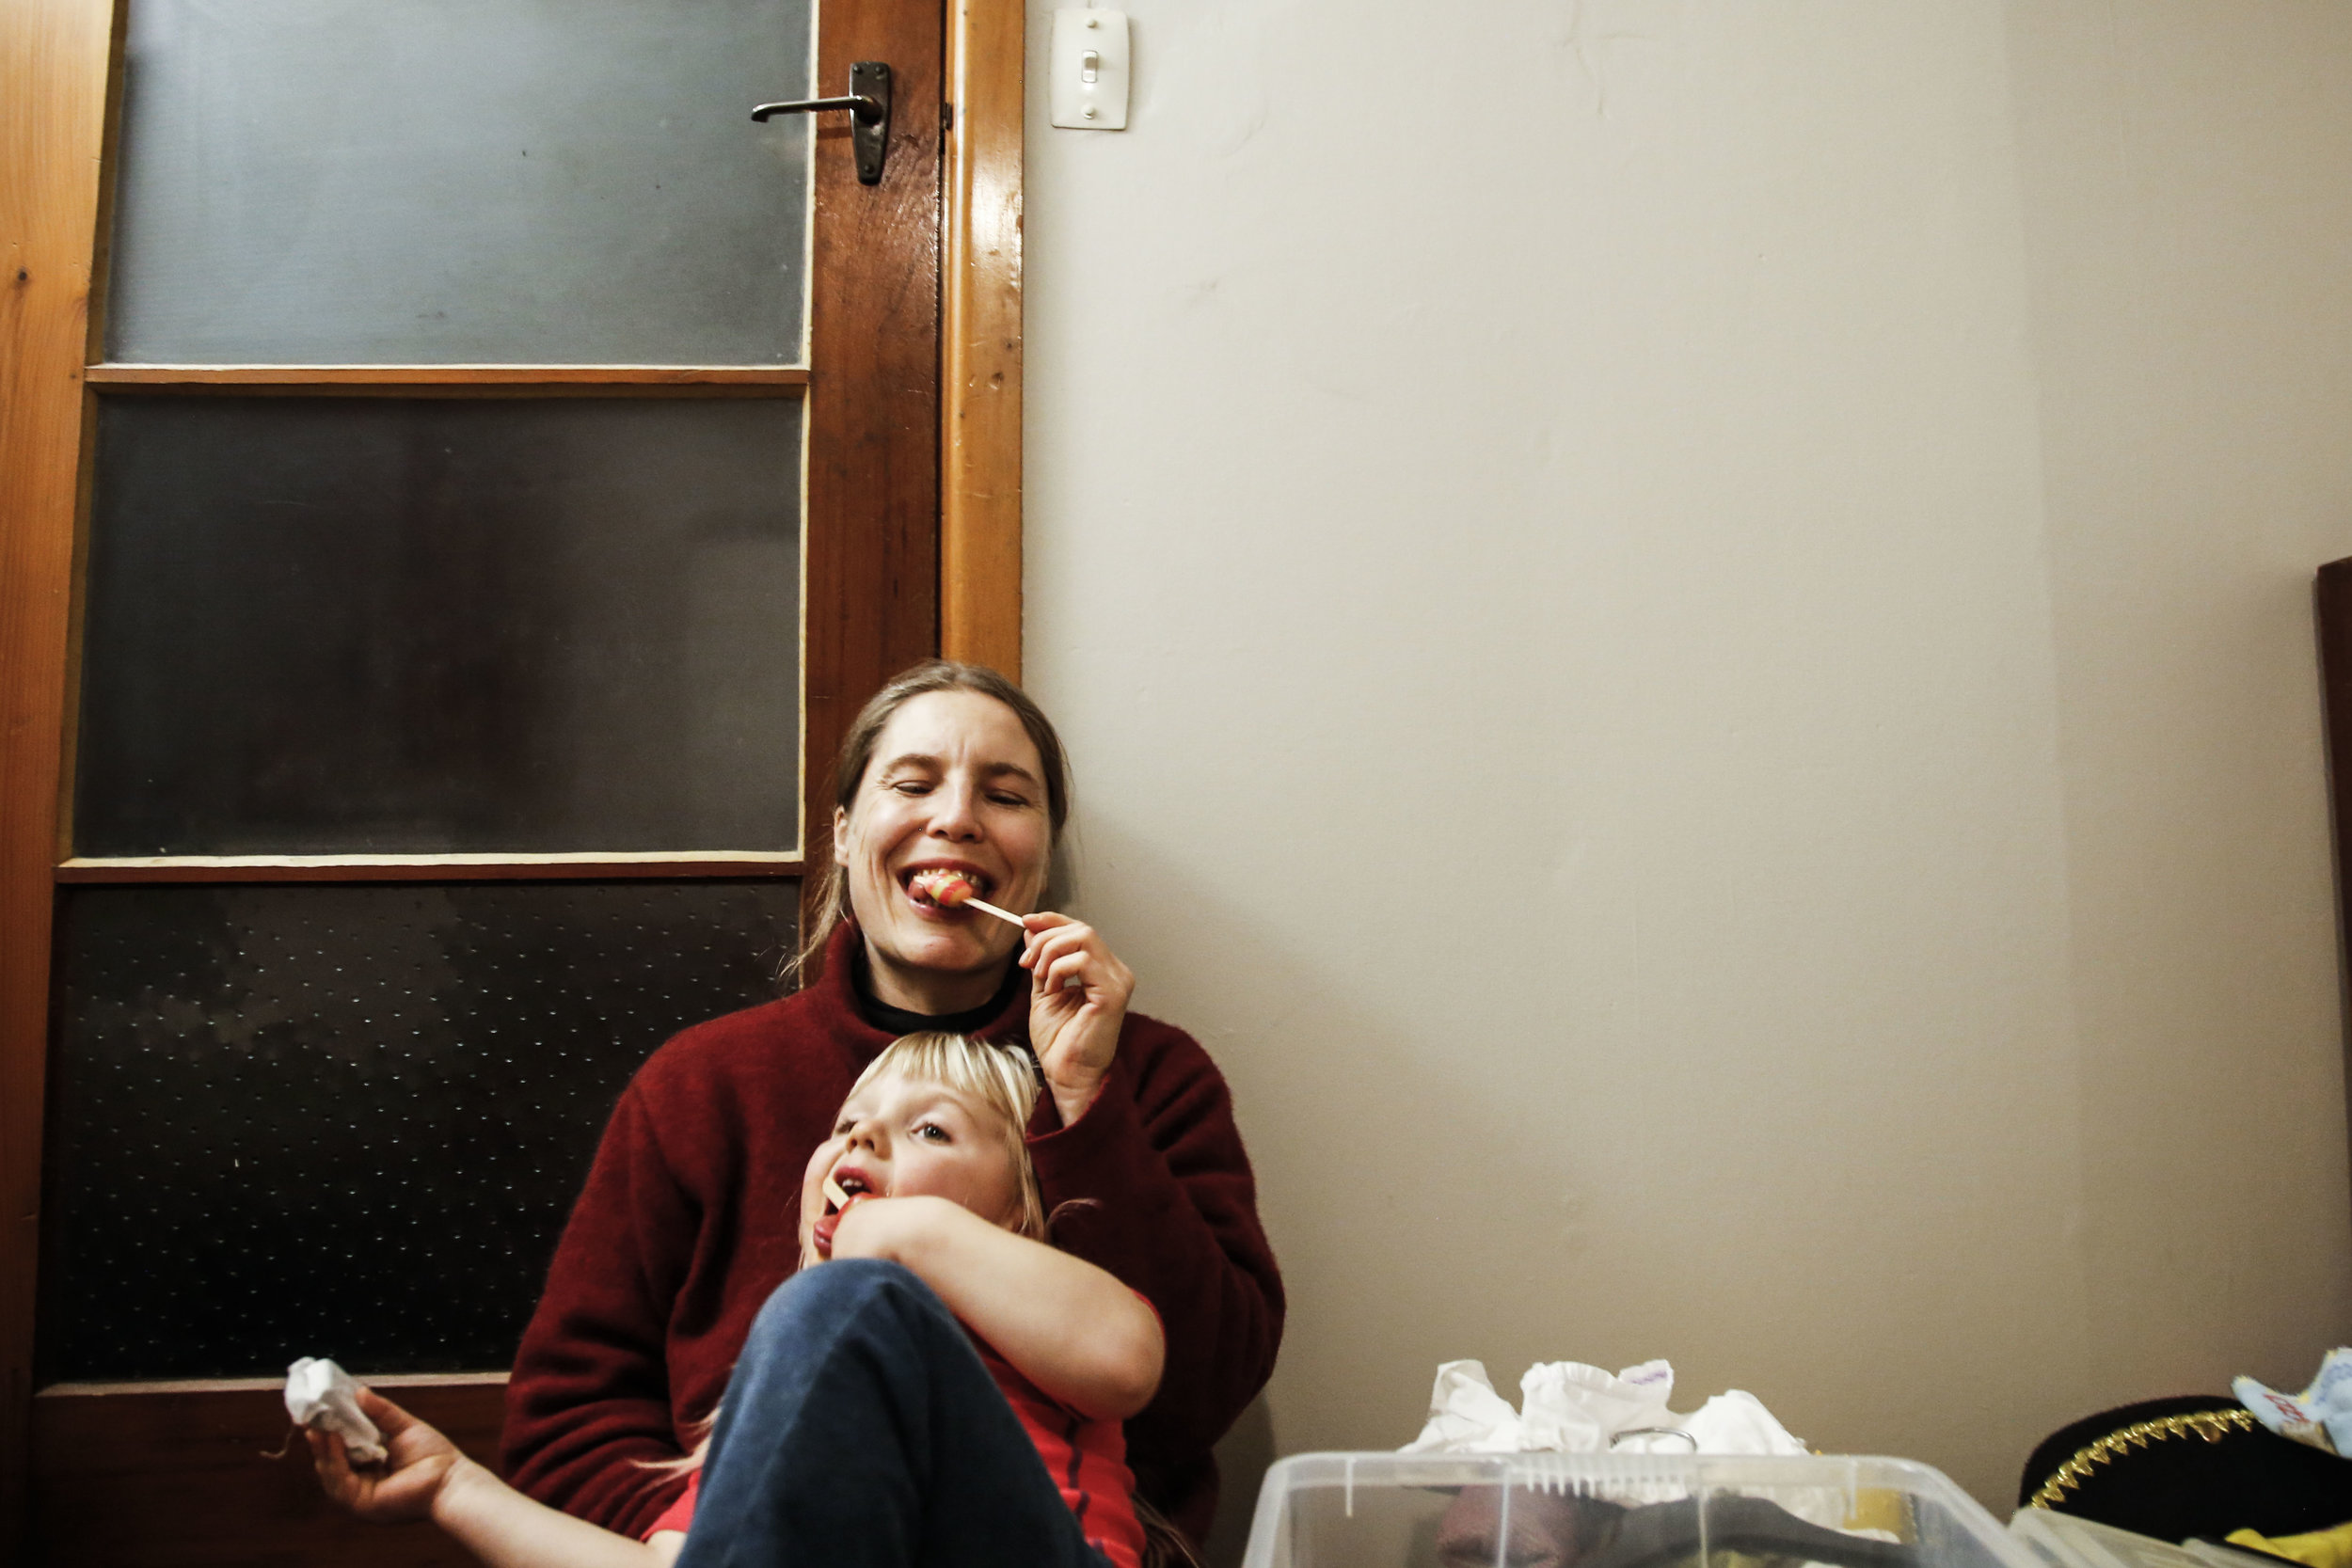 Olivia Ricken (center) and Auriel Ricken (center-front) eat popsicles together in their Christchurch, NZ home on May 26, 2016. Olivia Ricken, a clown and circus performer, was also deeply affected by the 2011 Christchurch Earthquake. She was forced to move out of several homes with her five year old son, Auriel, in addition to losing her circus school building at the Christchurch Polytechnic Institute of Technology.